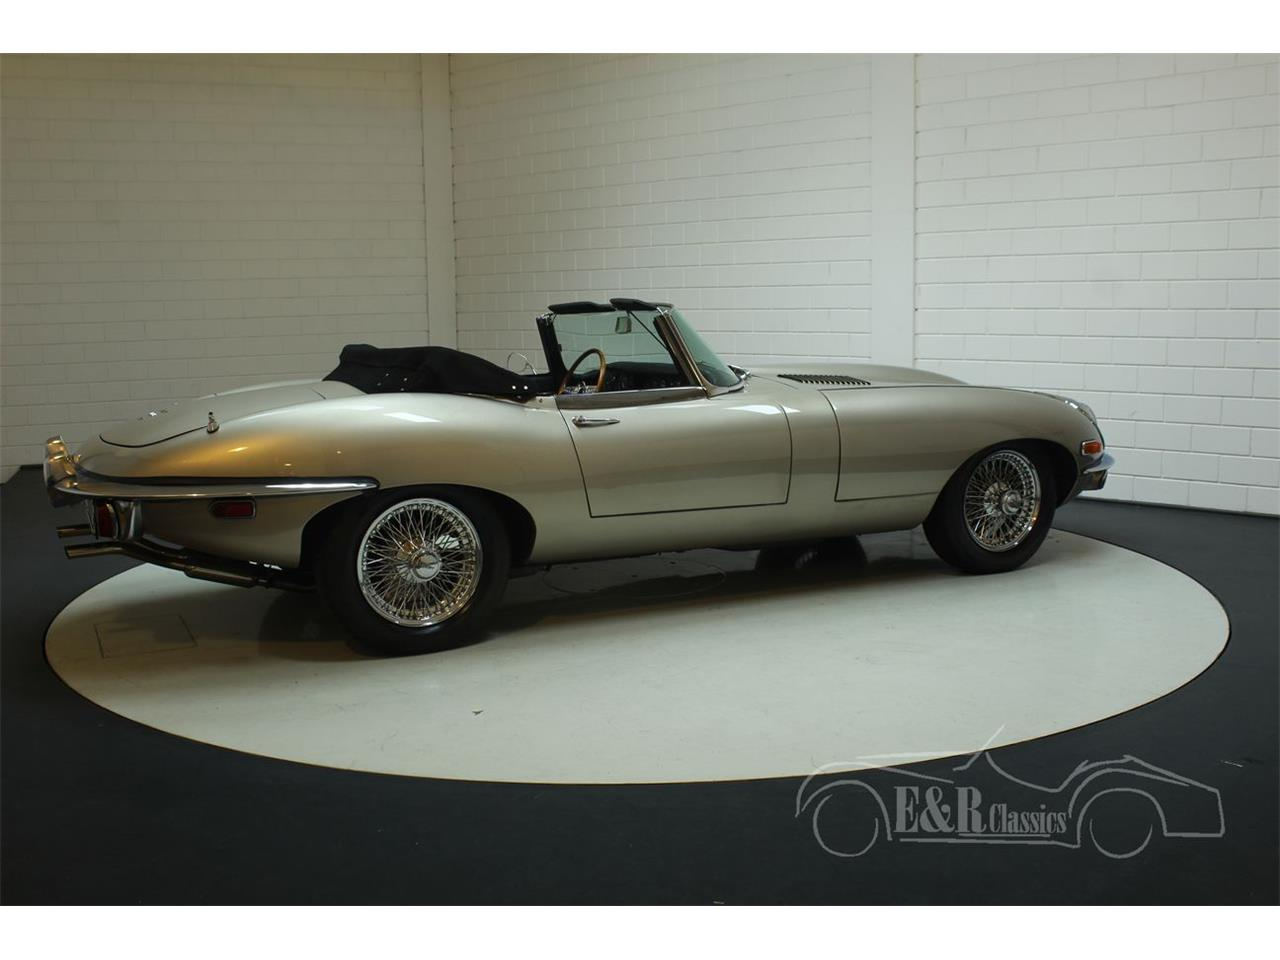 Large Picture of Classic '70 Jaguar E-Type located in Waalwijk - Keine Angabe - - $112,750.00 - PH40